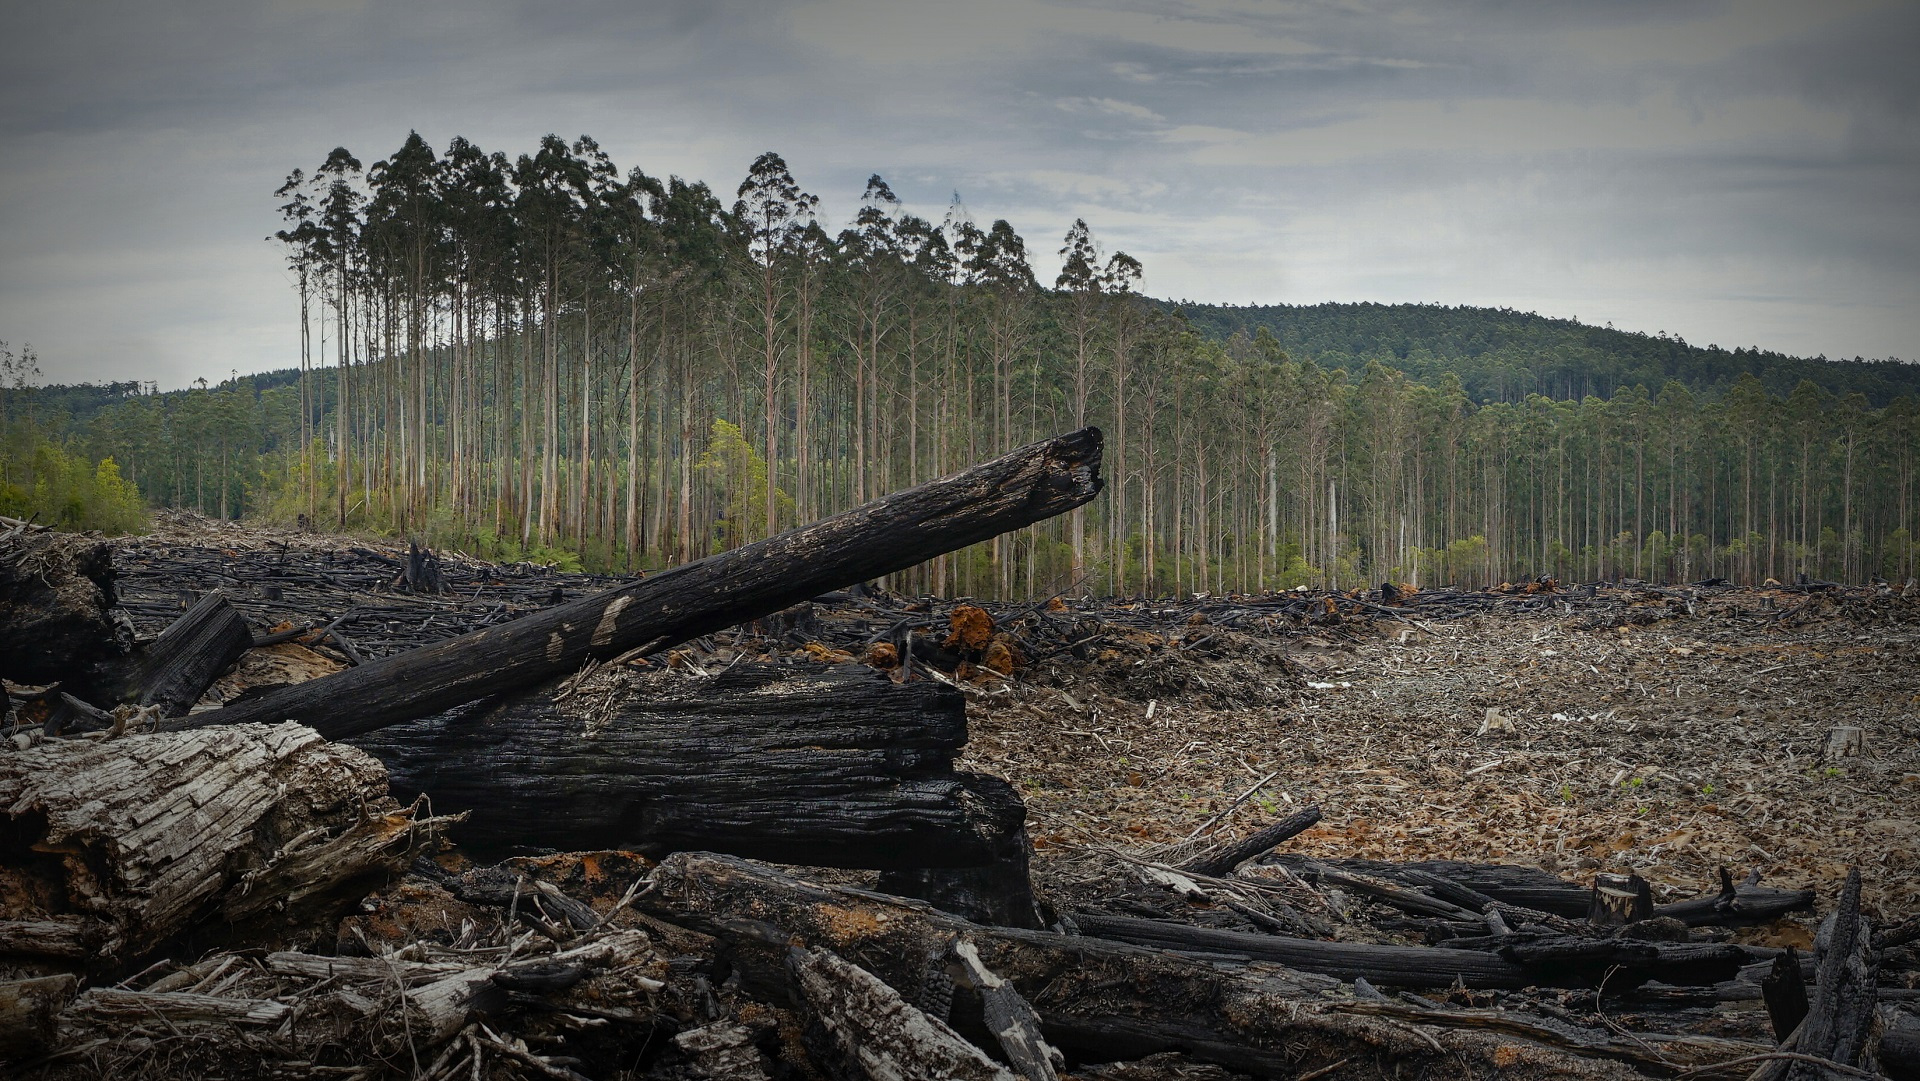 In Victoria, precious forests are logged for paper